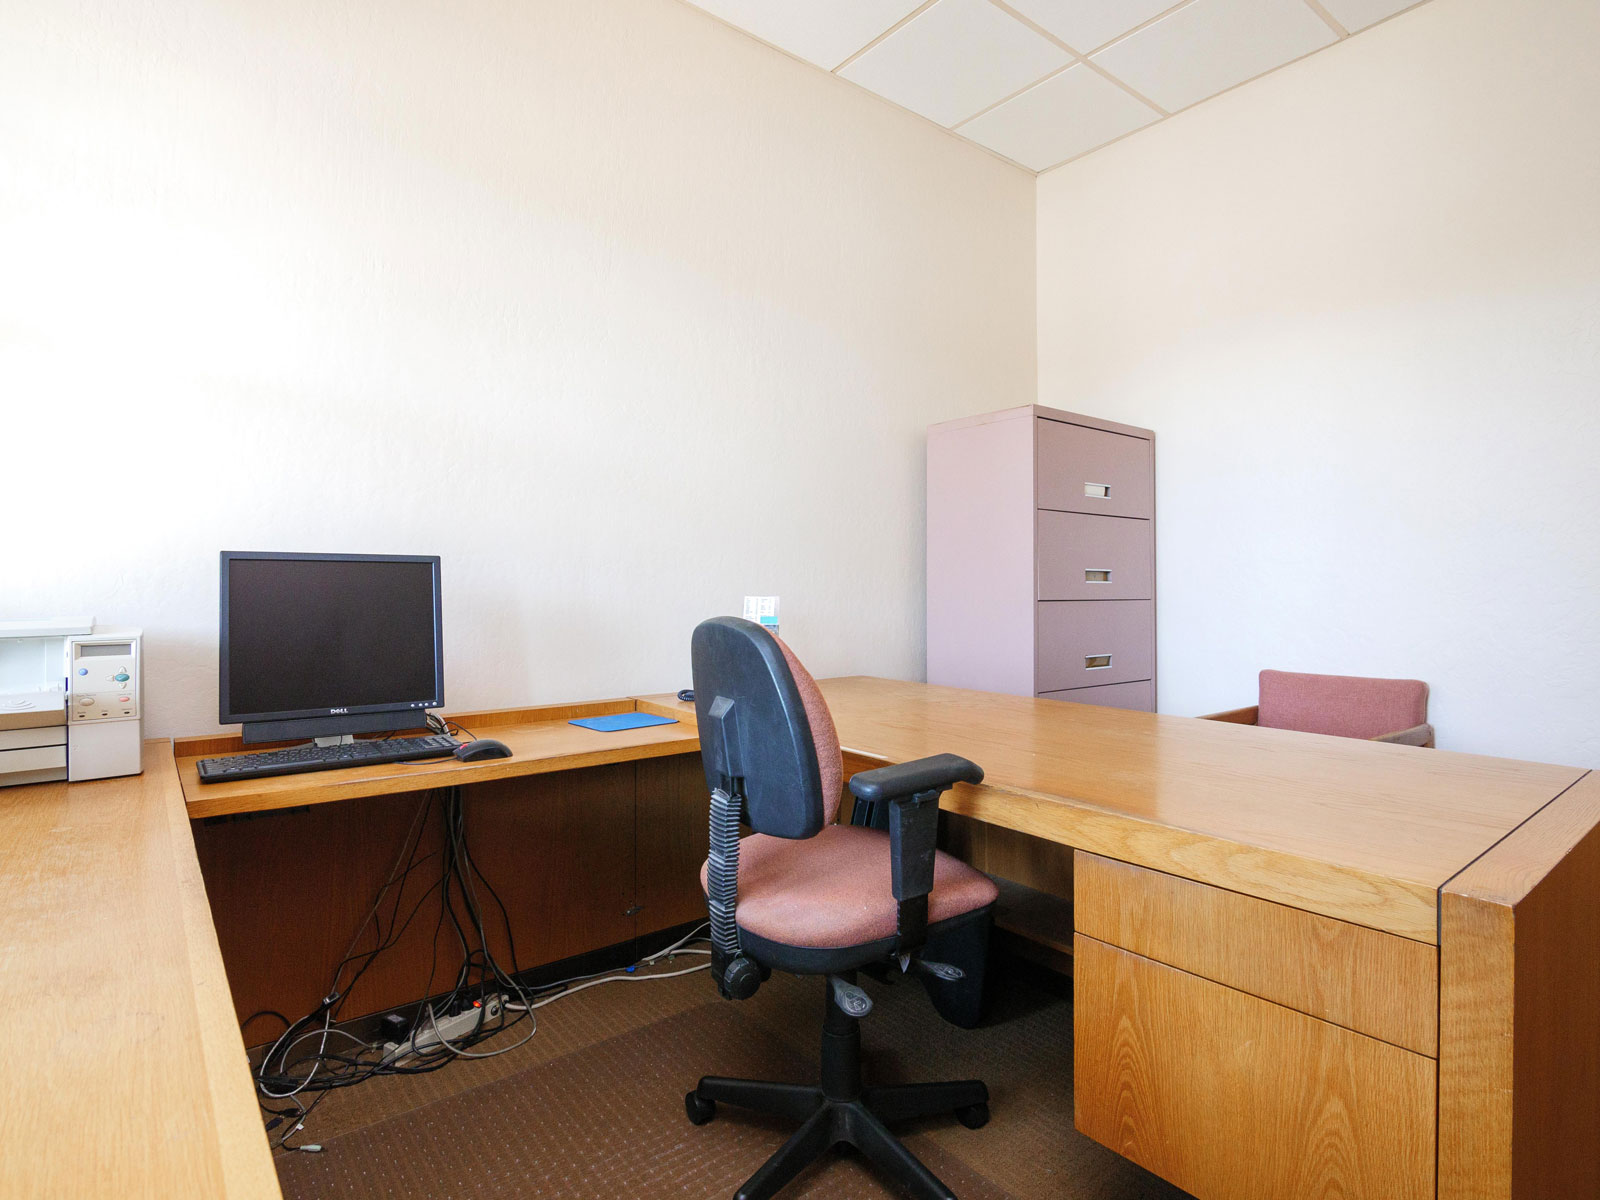 316-s-melrose-vista-ca-executive-office-for-lease-203-1